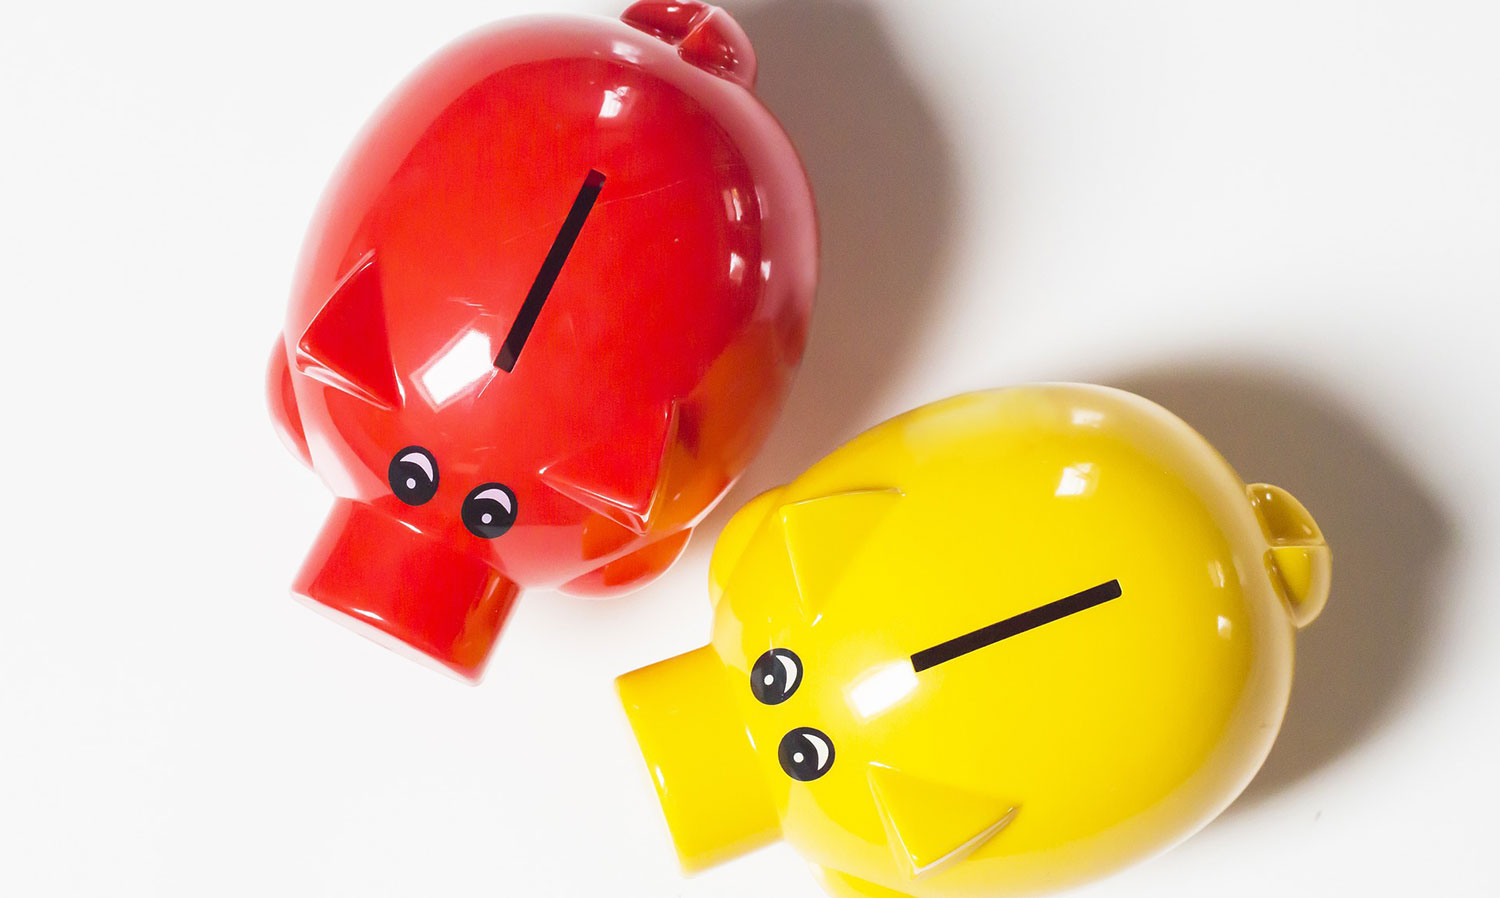 equity release - two piggy banks one red one yellow